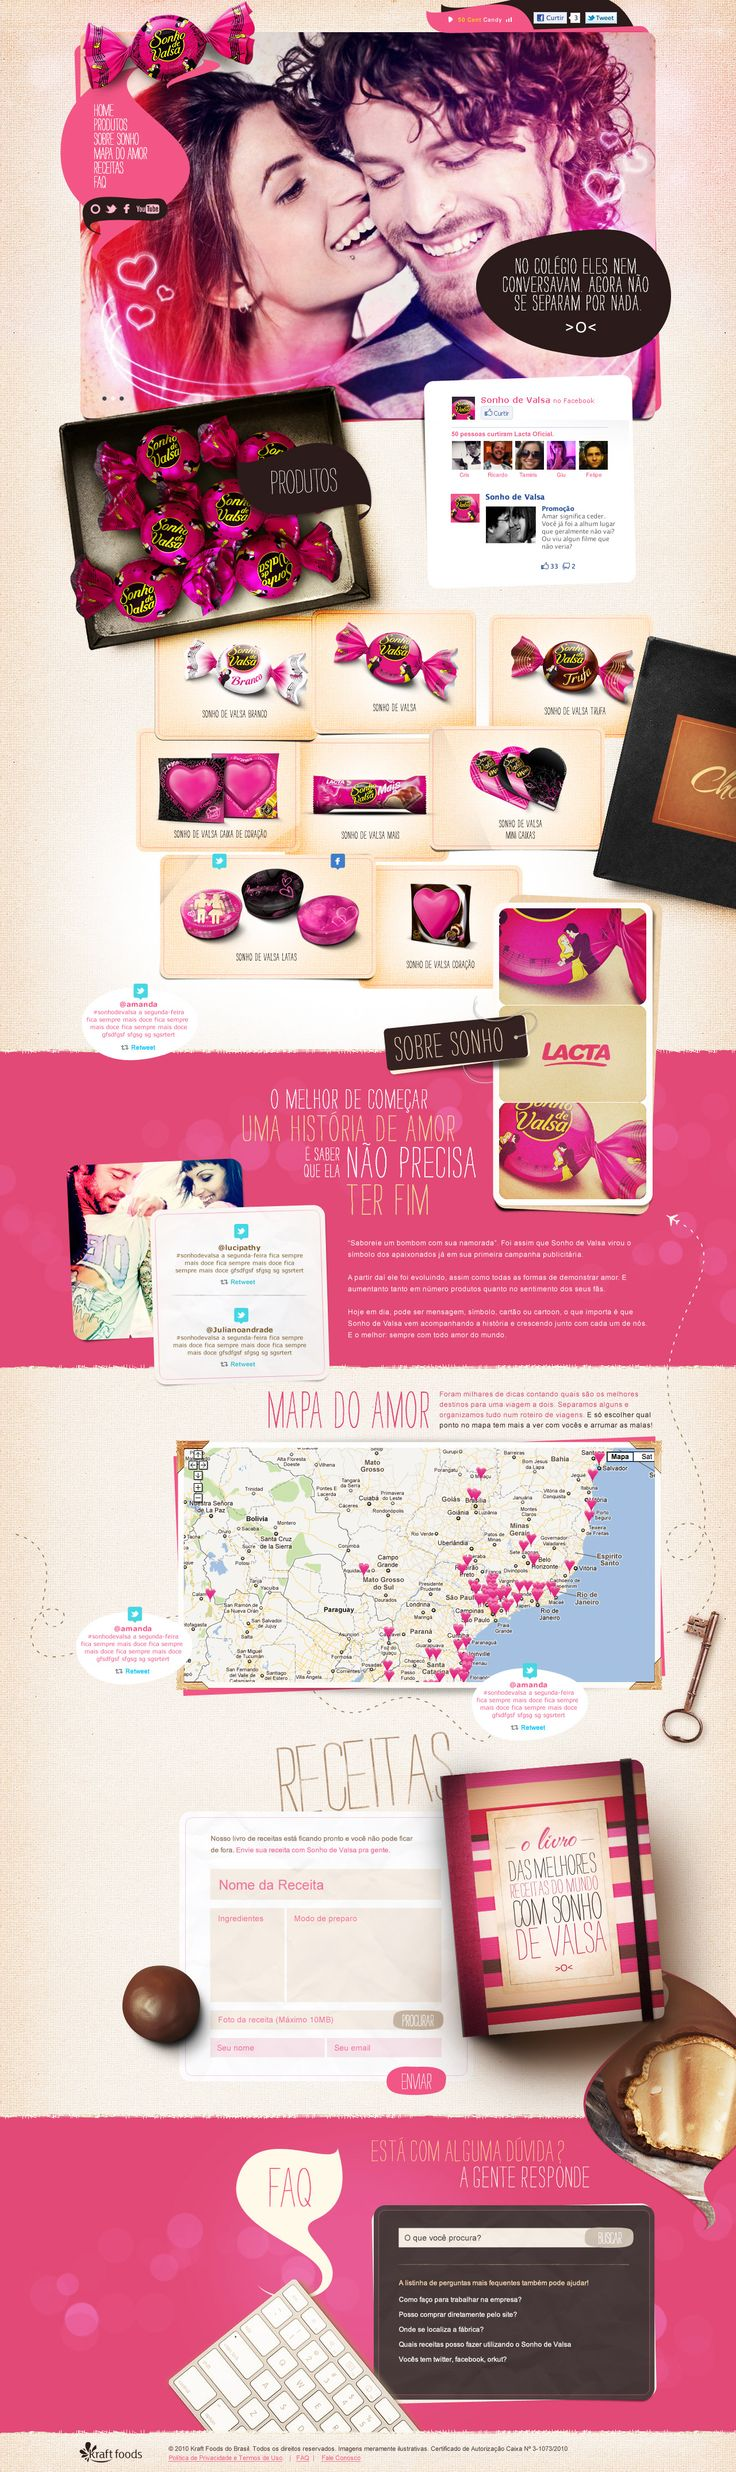 web design cute romantic